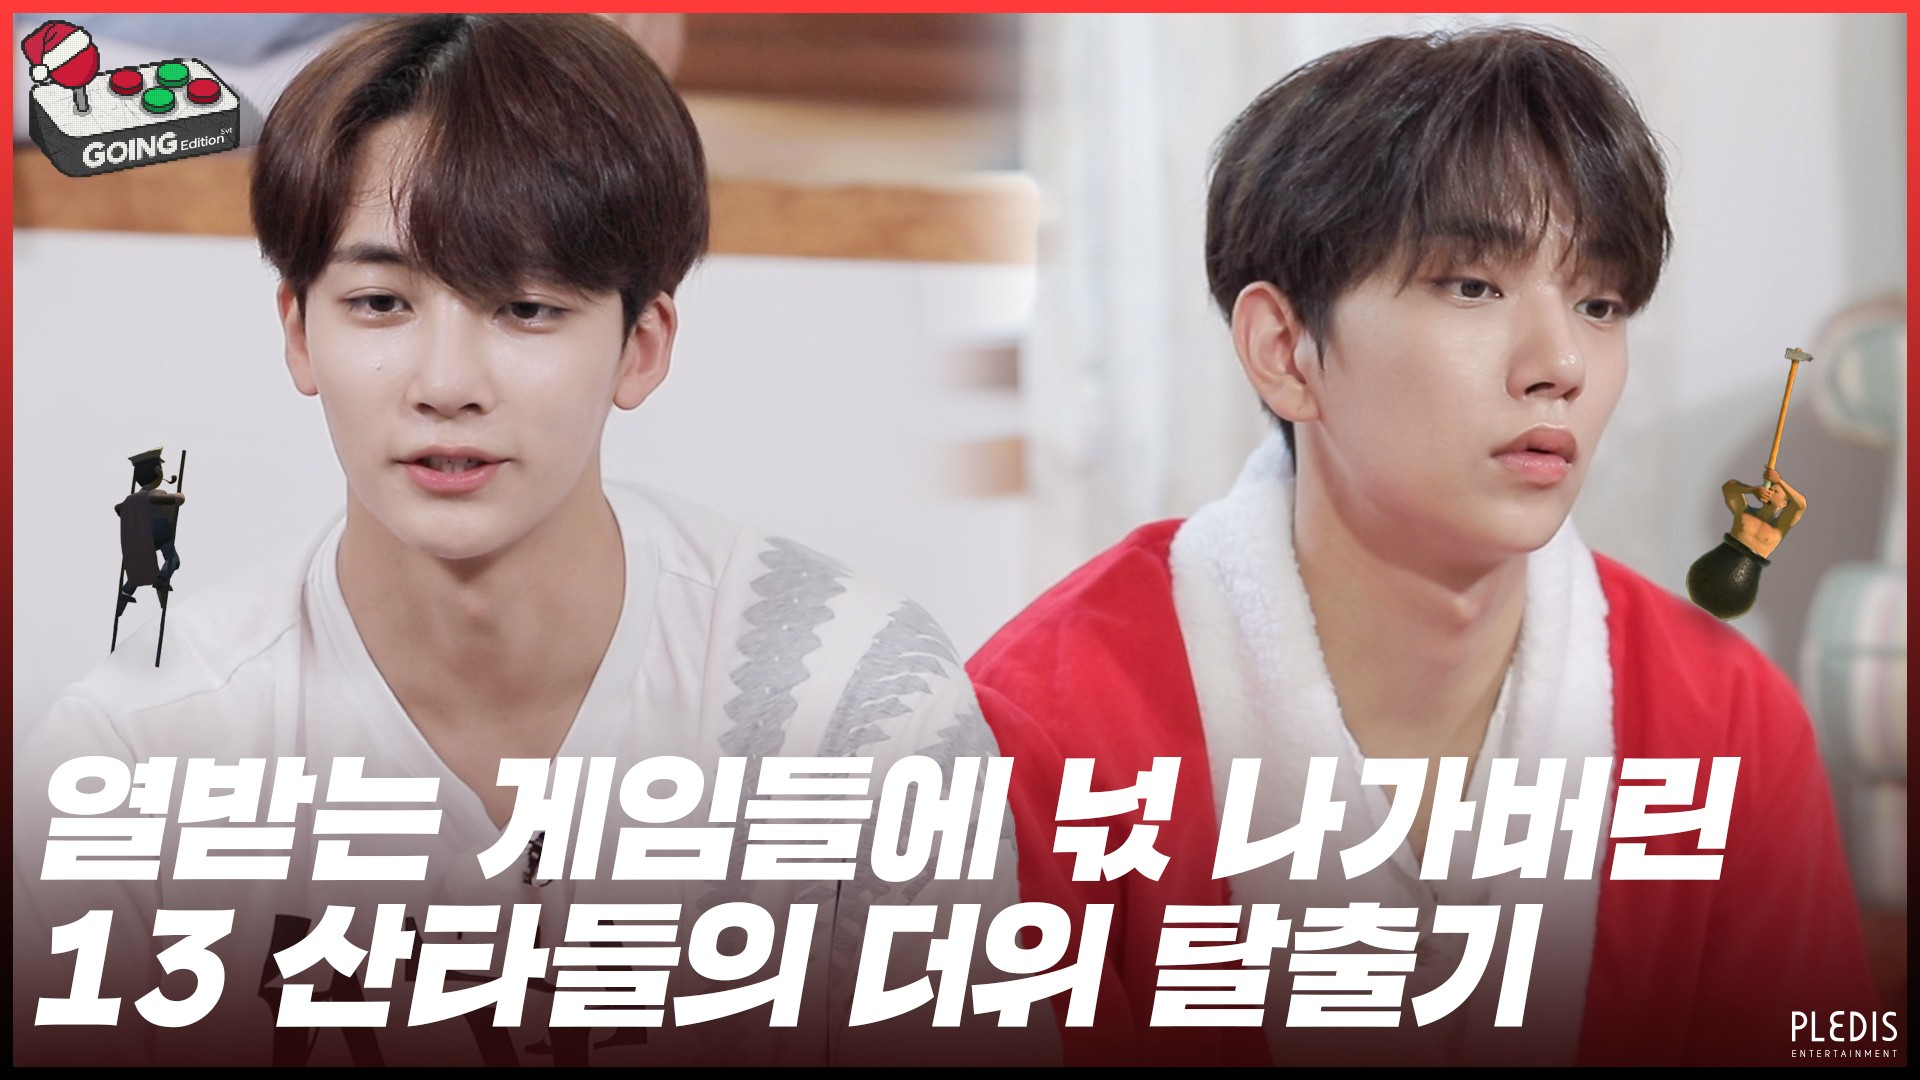 [GOING SEVENTEEN 2020] EP.30 8월의 크리스마스 #2 (Christmas in August #2)